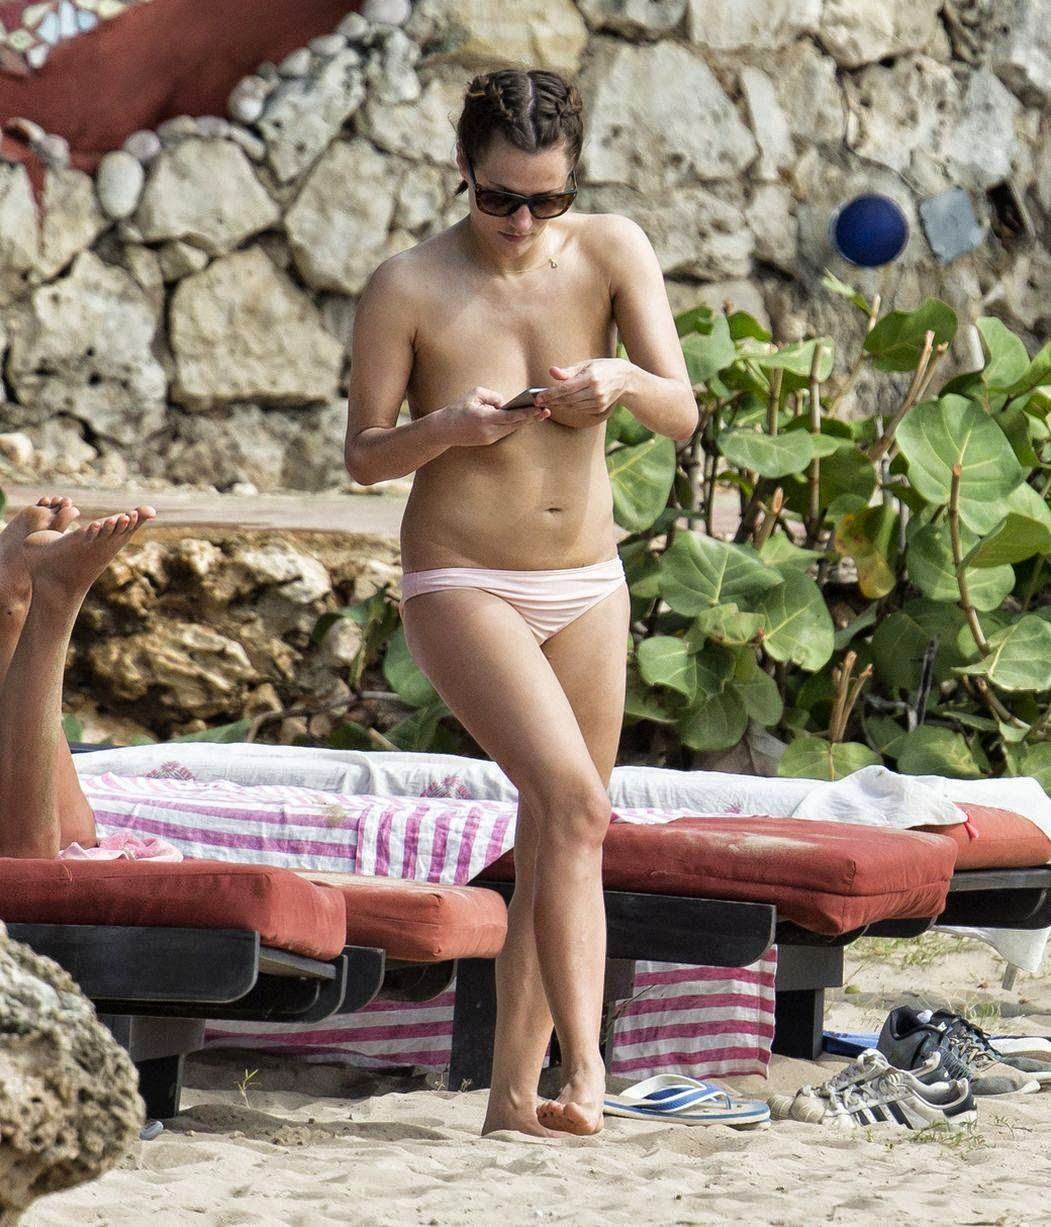 Caroline Flack in topless invia temperature in volo-5373